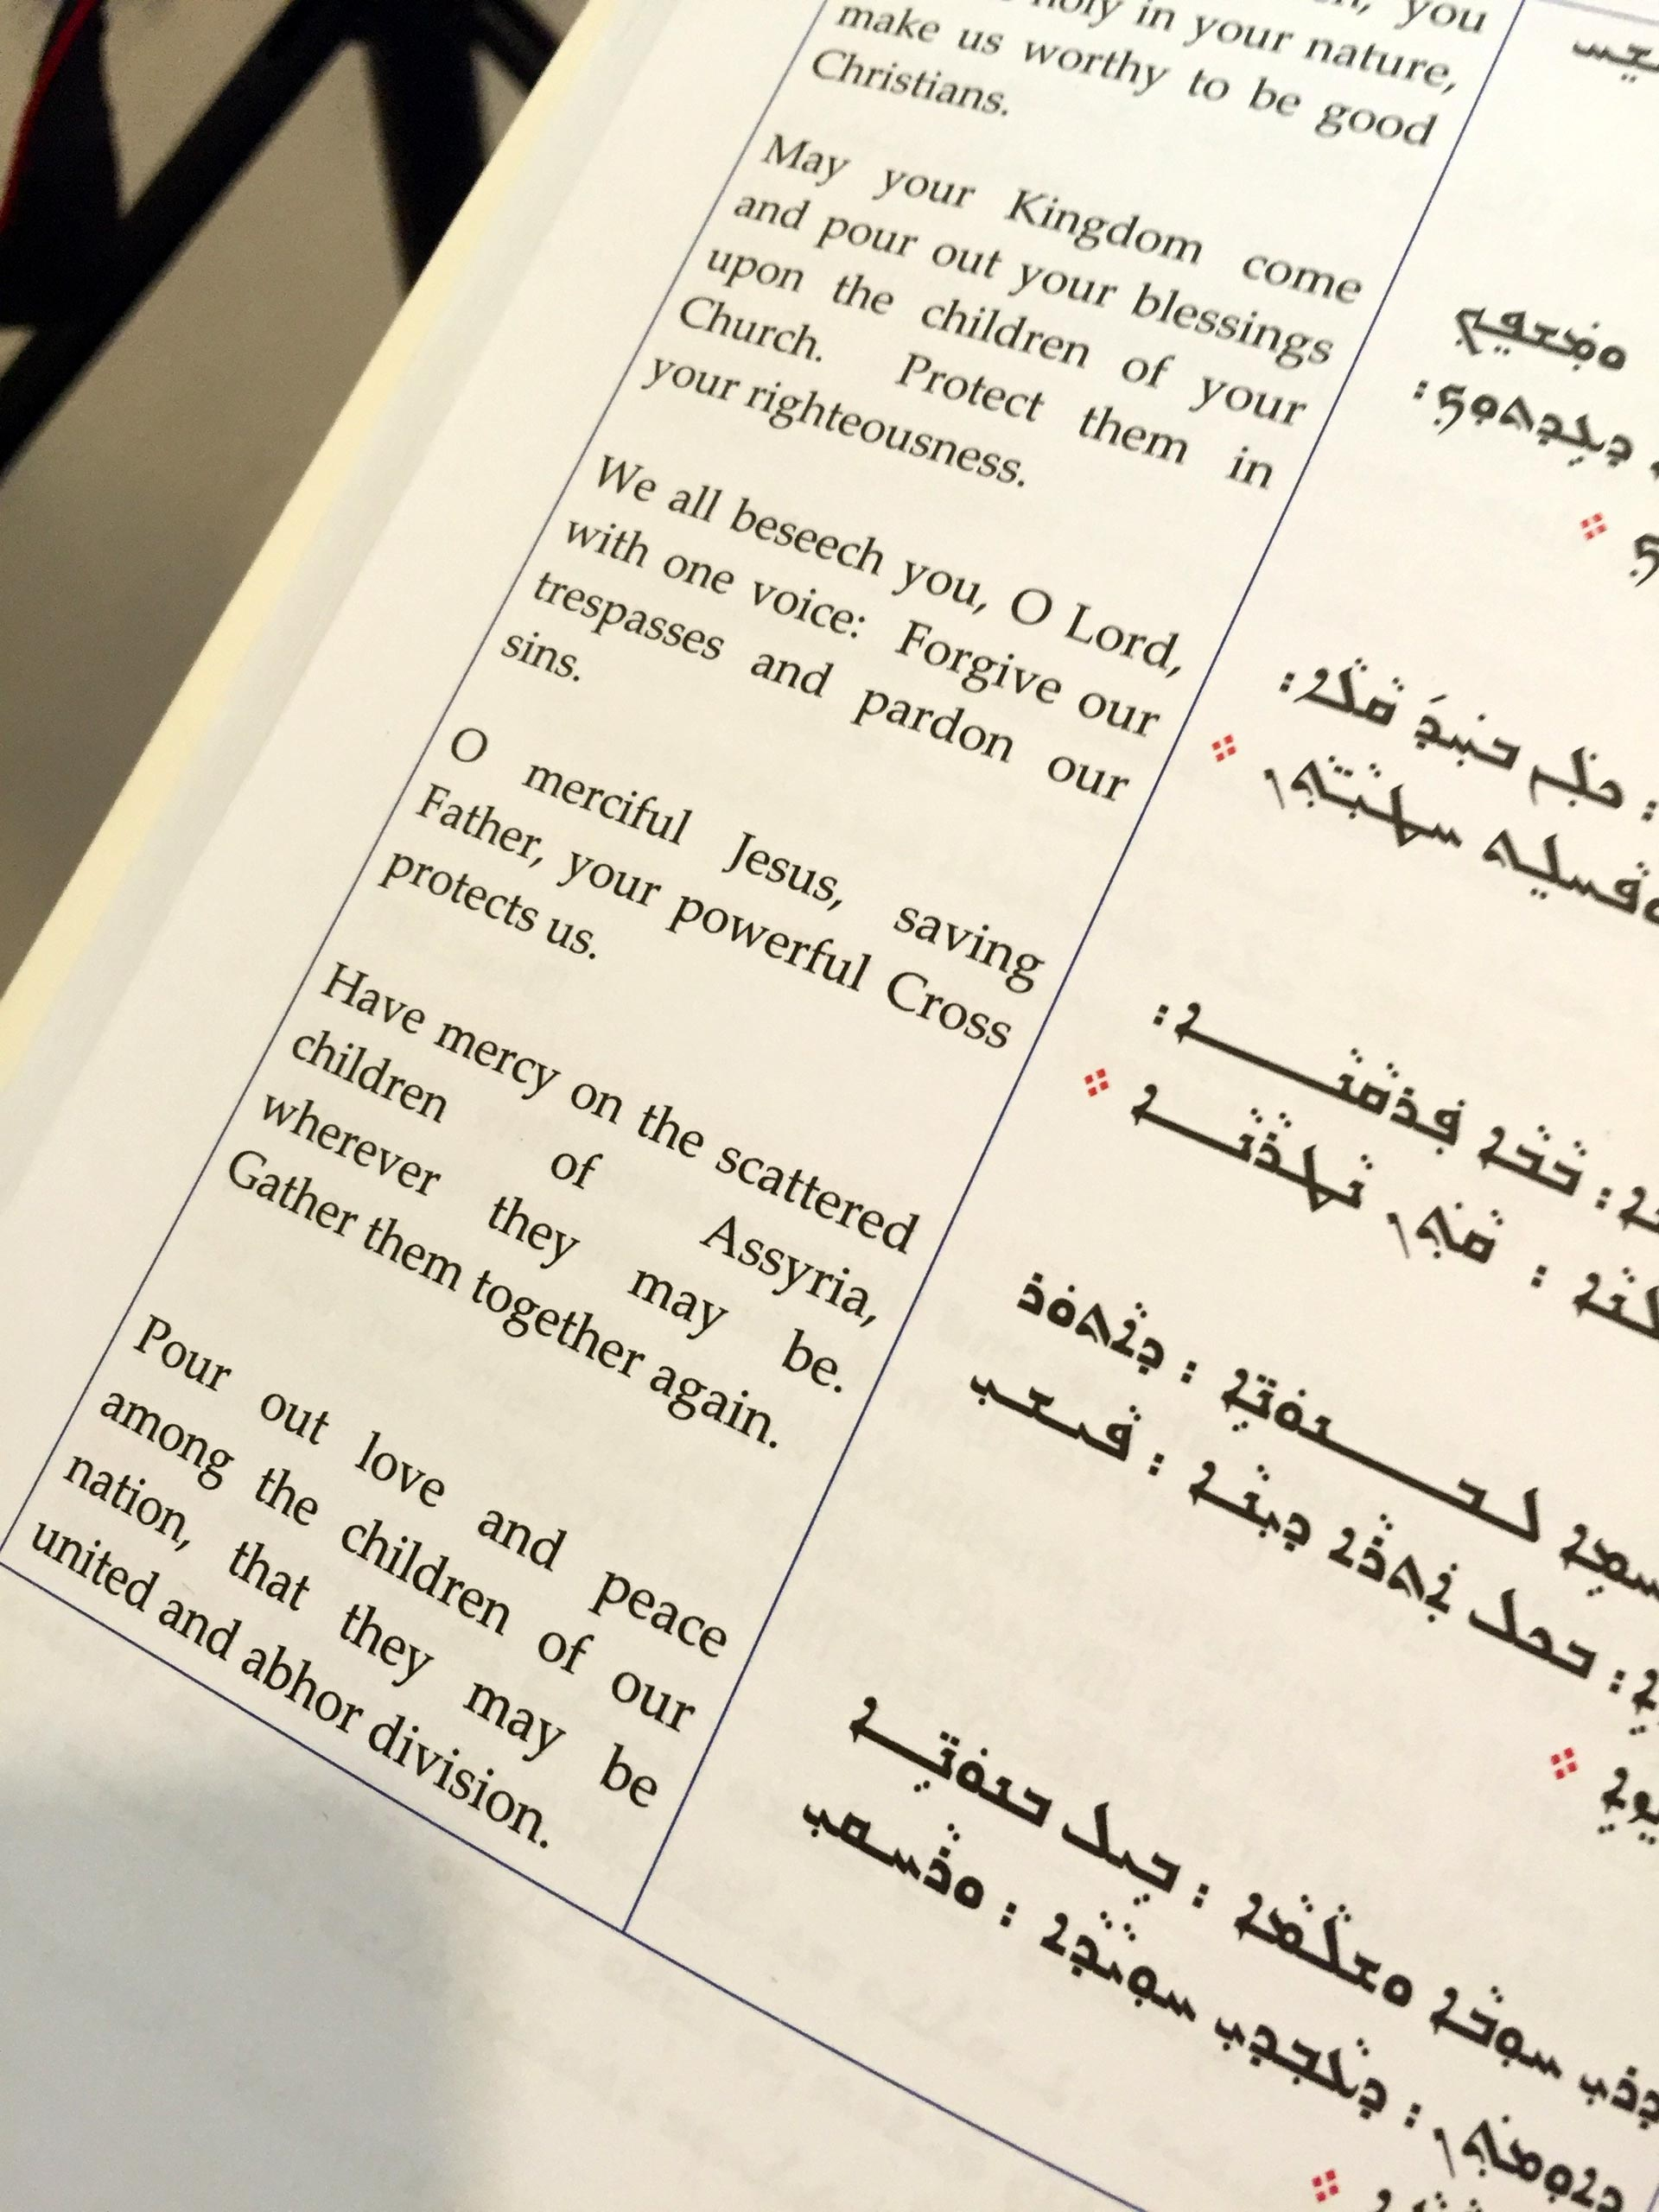 The Assyrian liturgy -- which has been used by the Assyrian Church of the East for nearly 2,000 years -- is printed in English and the Assyrian language.